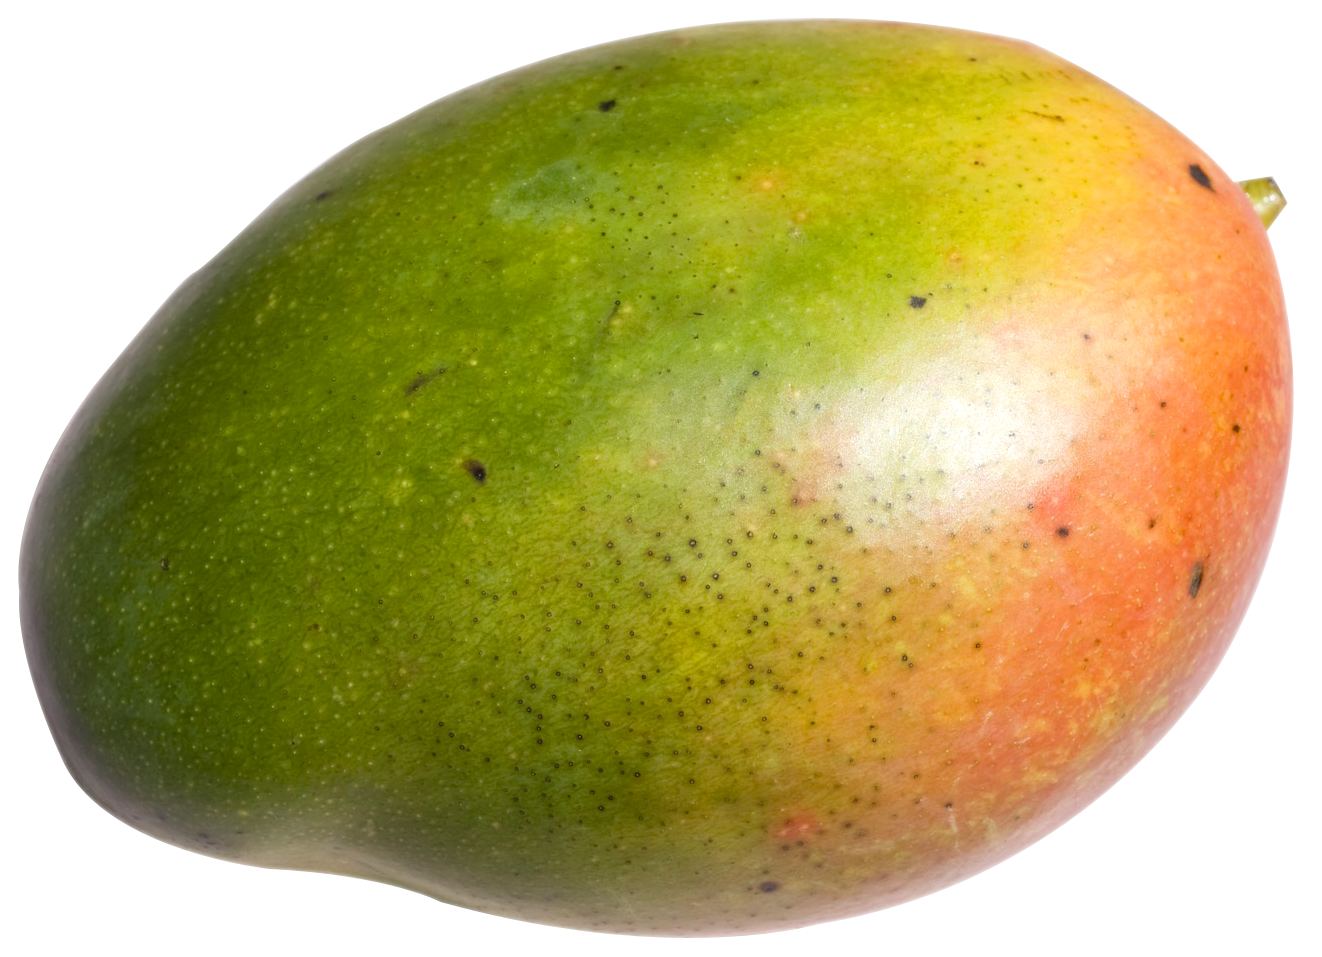 Png transparent free images. Mango clipart apple